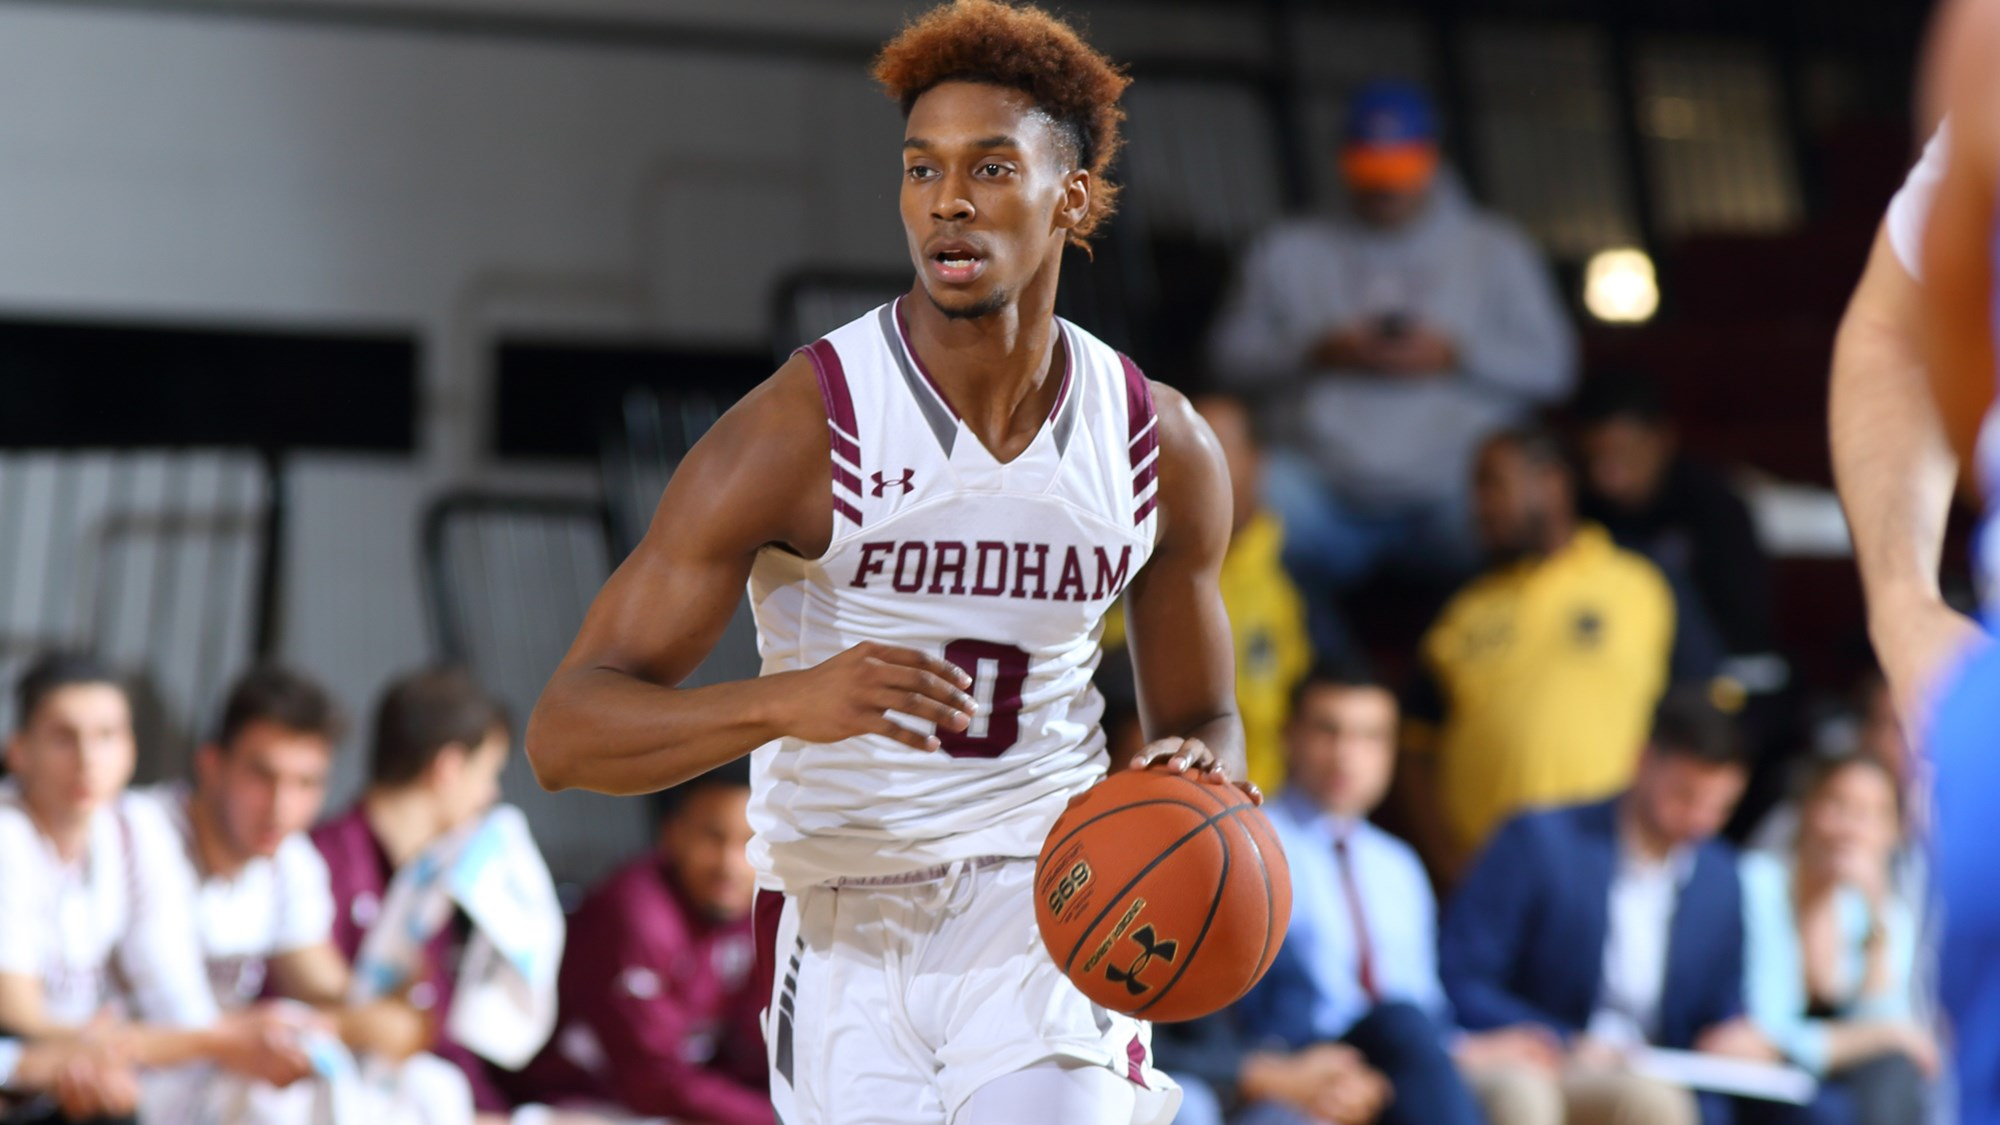 Men's Basketball Falls at #10 West Virginia